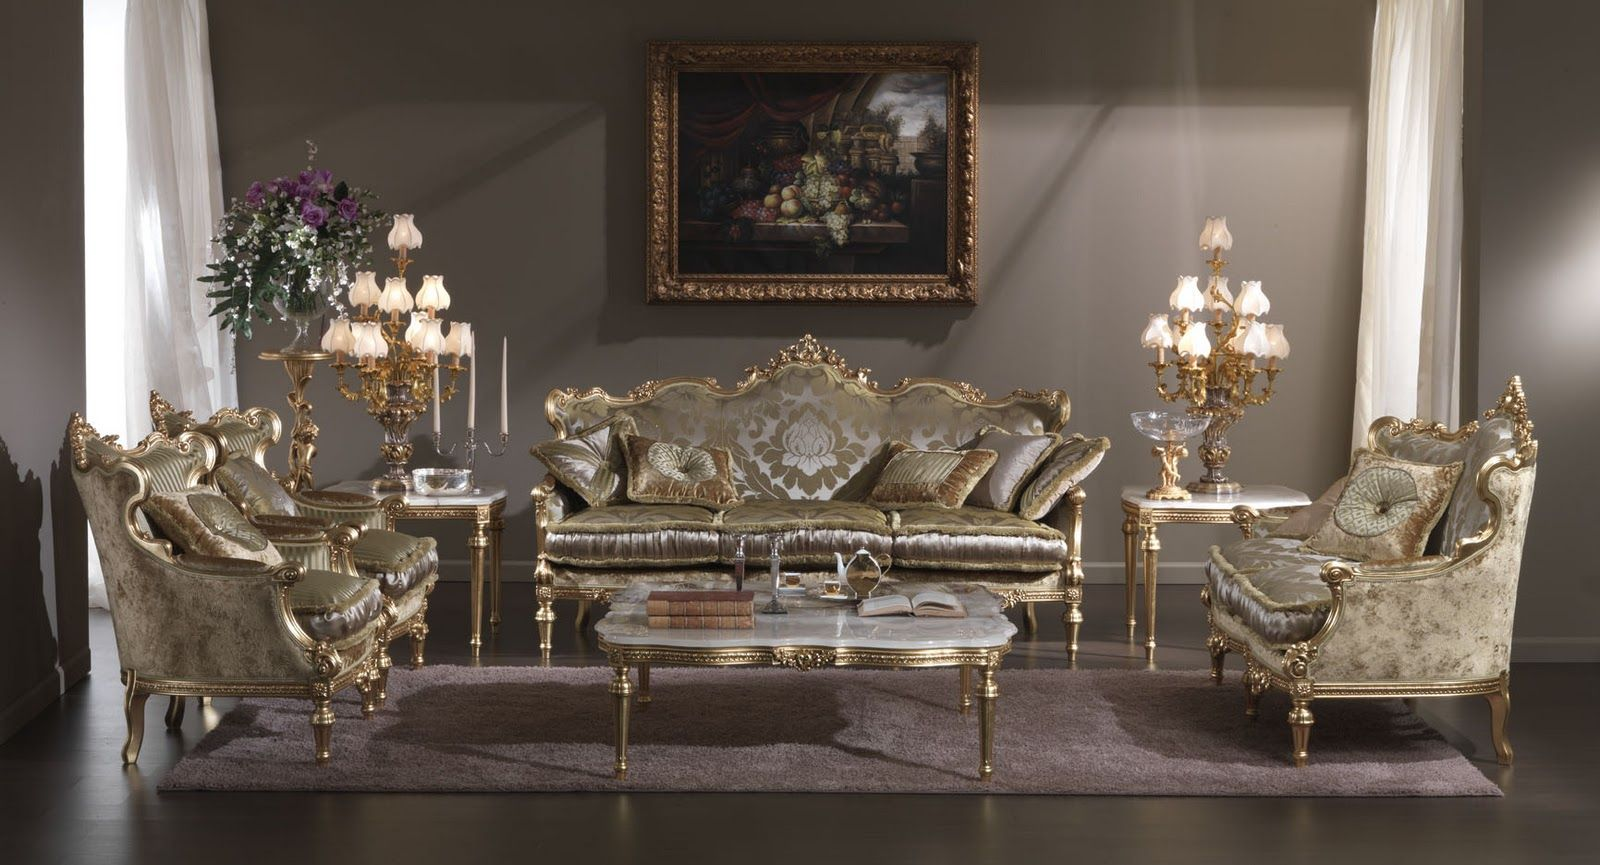 Antique Living Room Designs Pleasing Italian Living Room Furniture   Italian Classic Furniture Decorating Inspiration